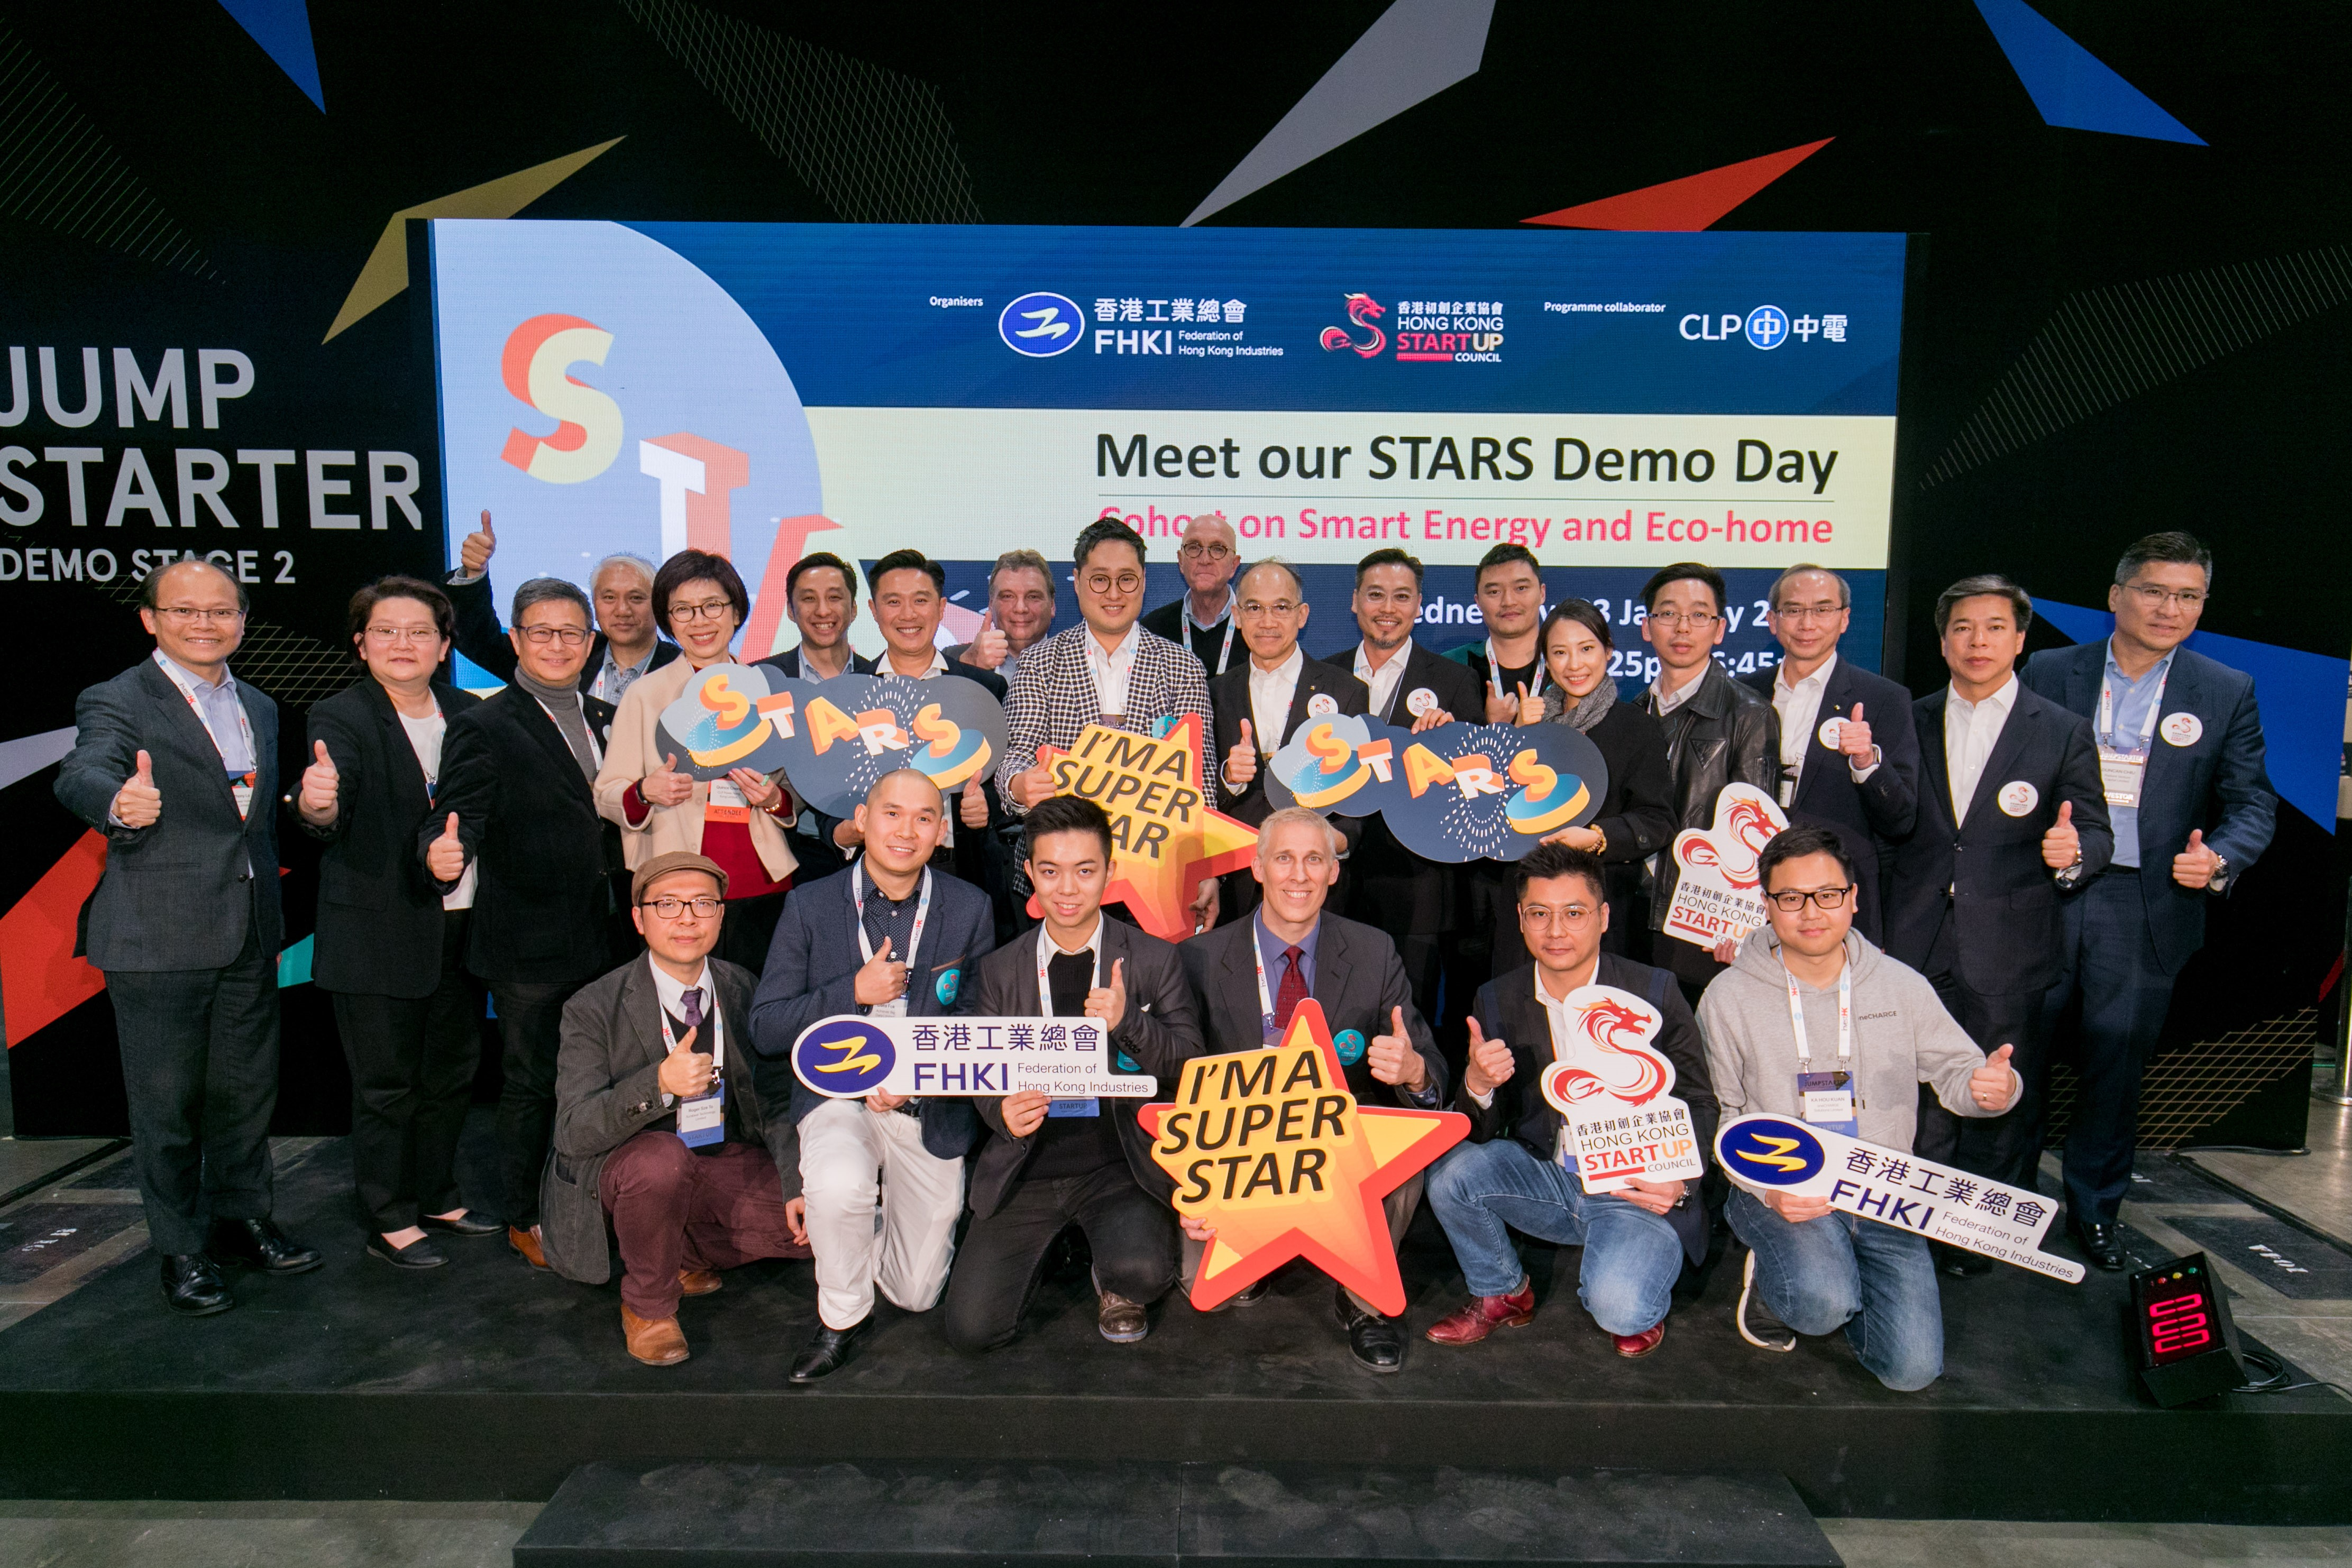 Meet our STARS Demo Day